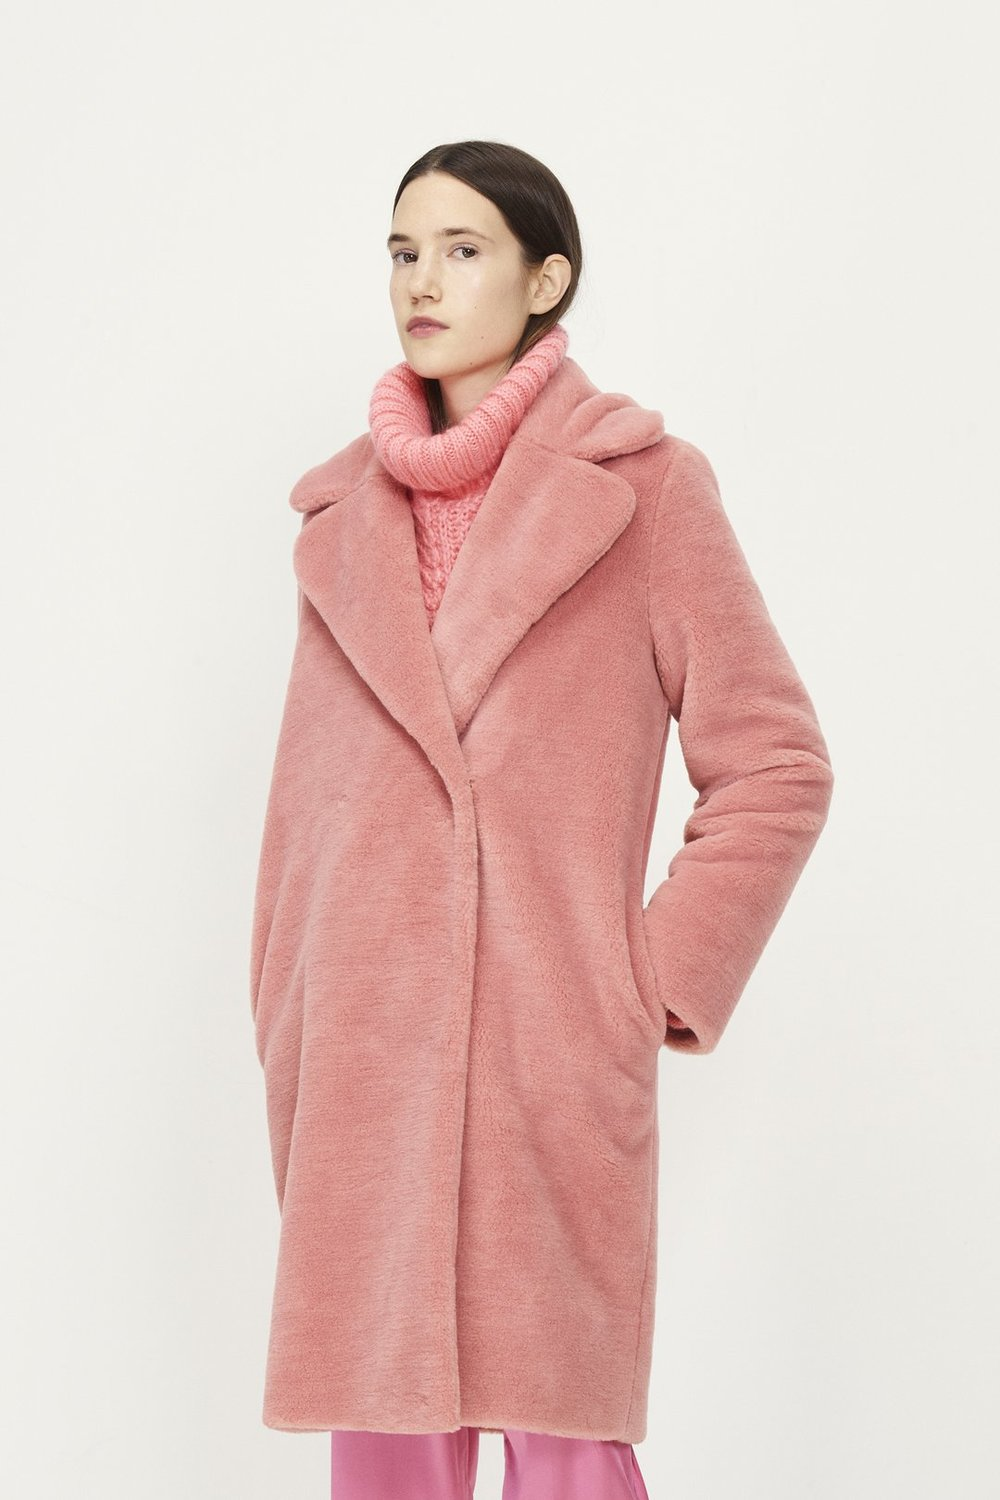 Concord Faux Fur Jacket from Stine // Ethical Winter Fashion